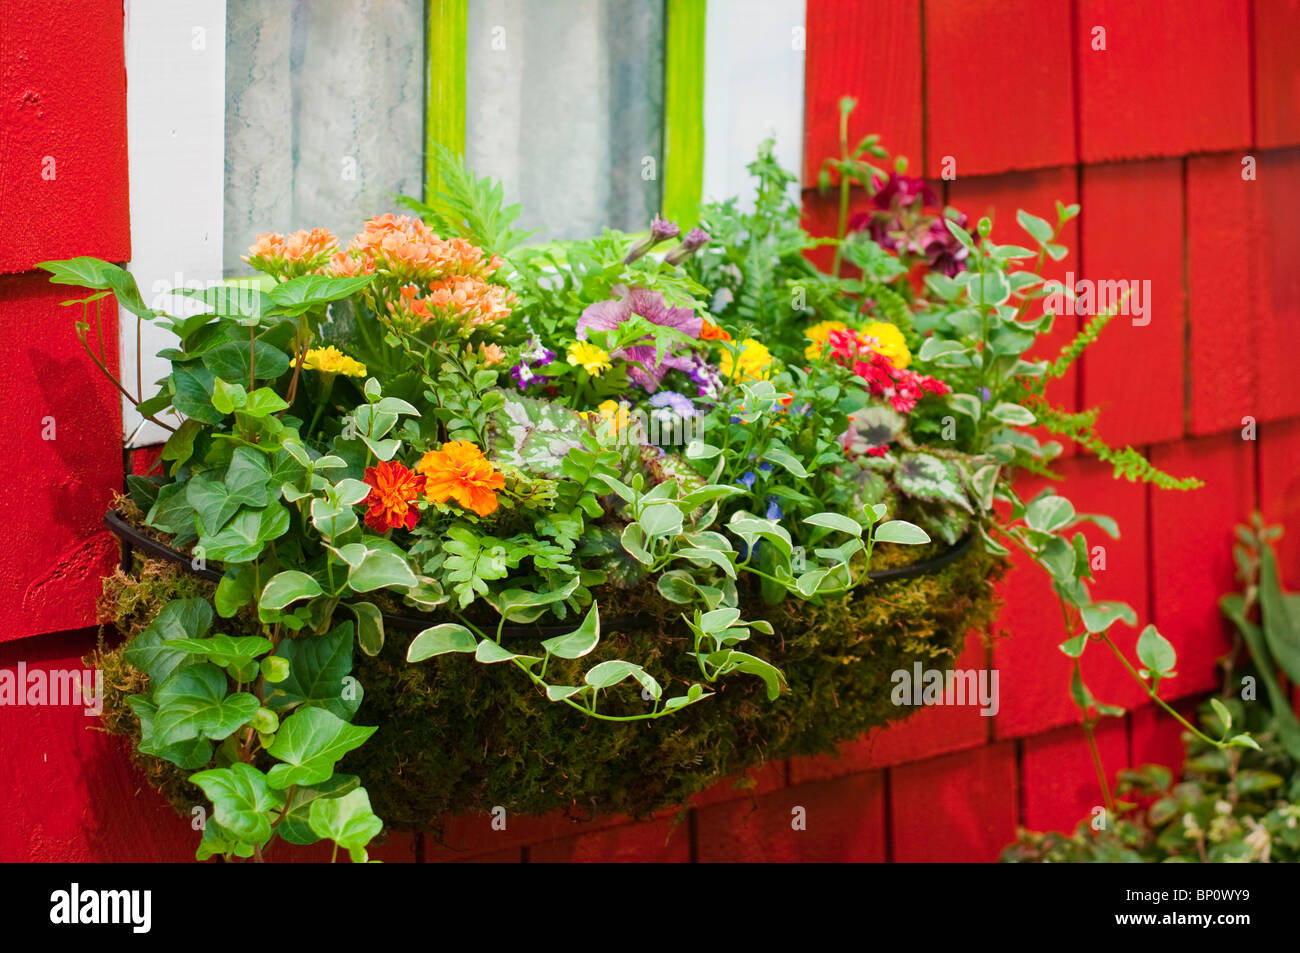 Flowers in Window Box - Stock Image